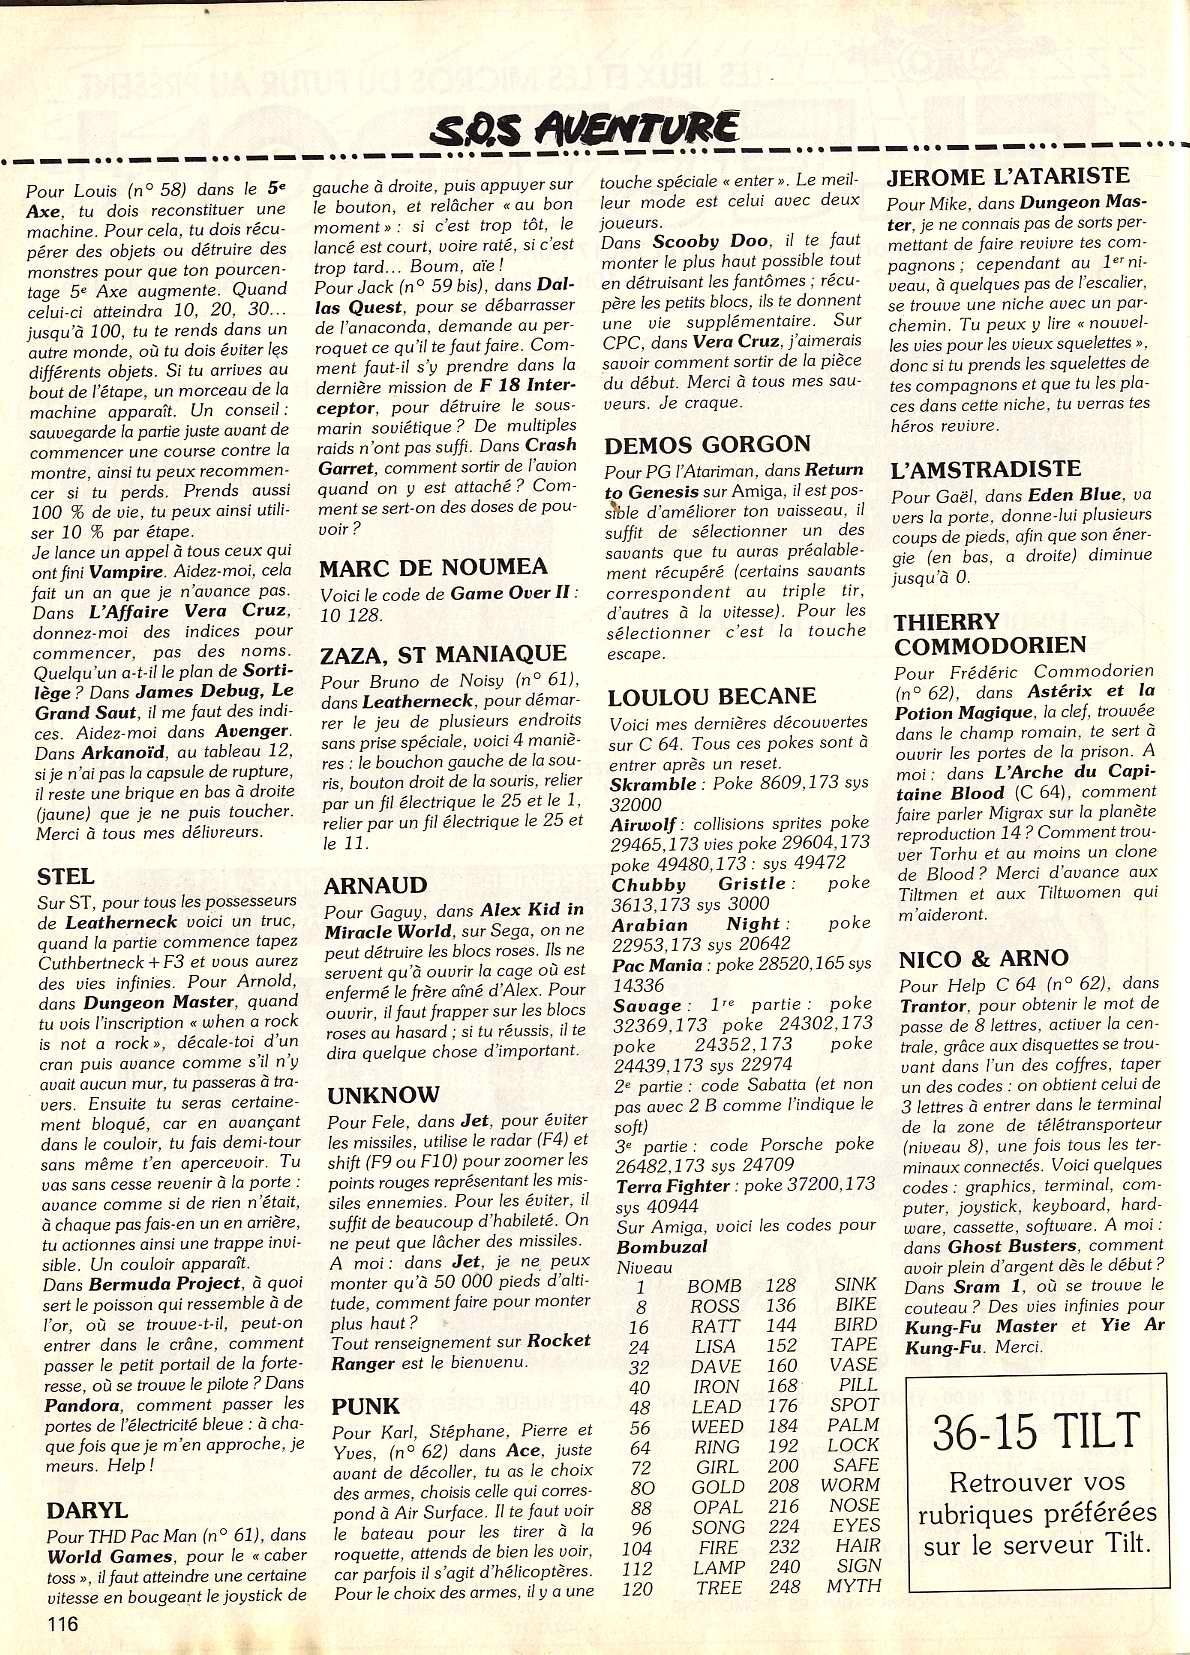 Dungeon Master Hints published in French magazine 'Tilt', Issue #64, March 1989, Page 116